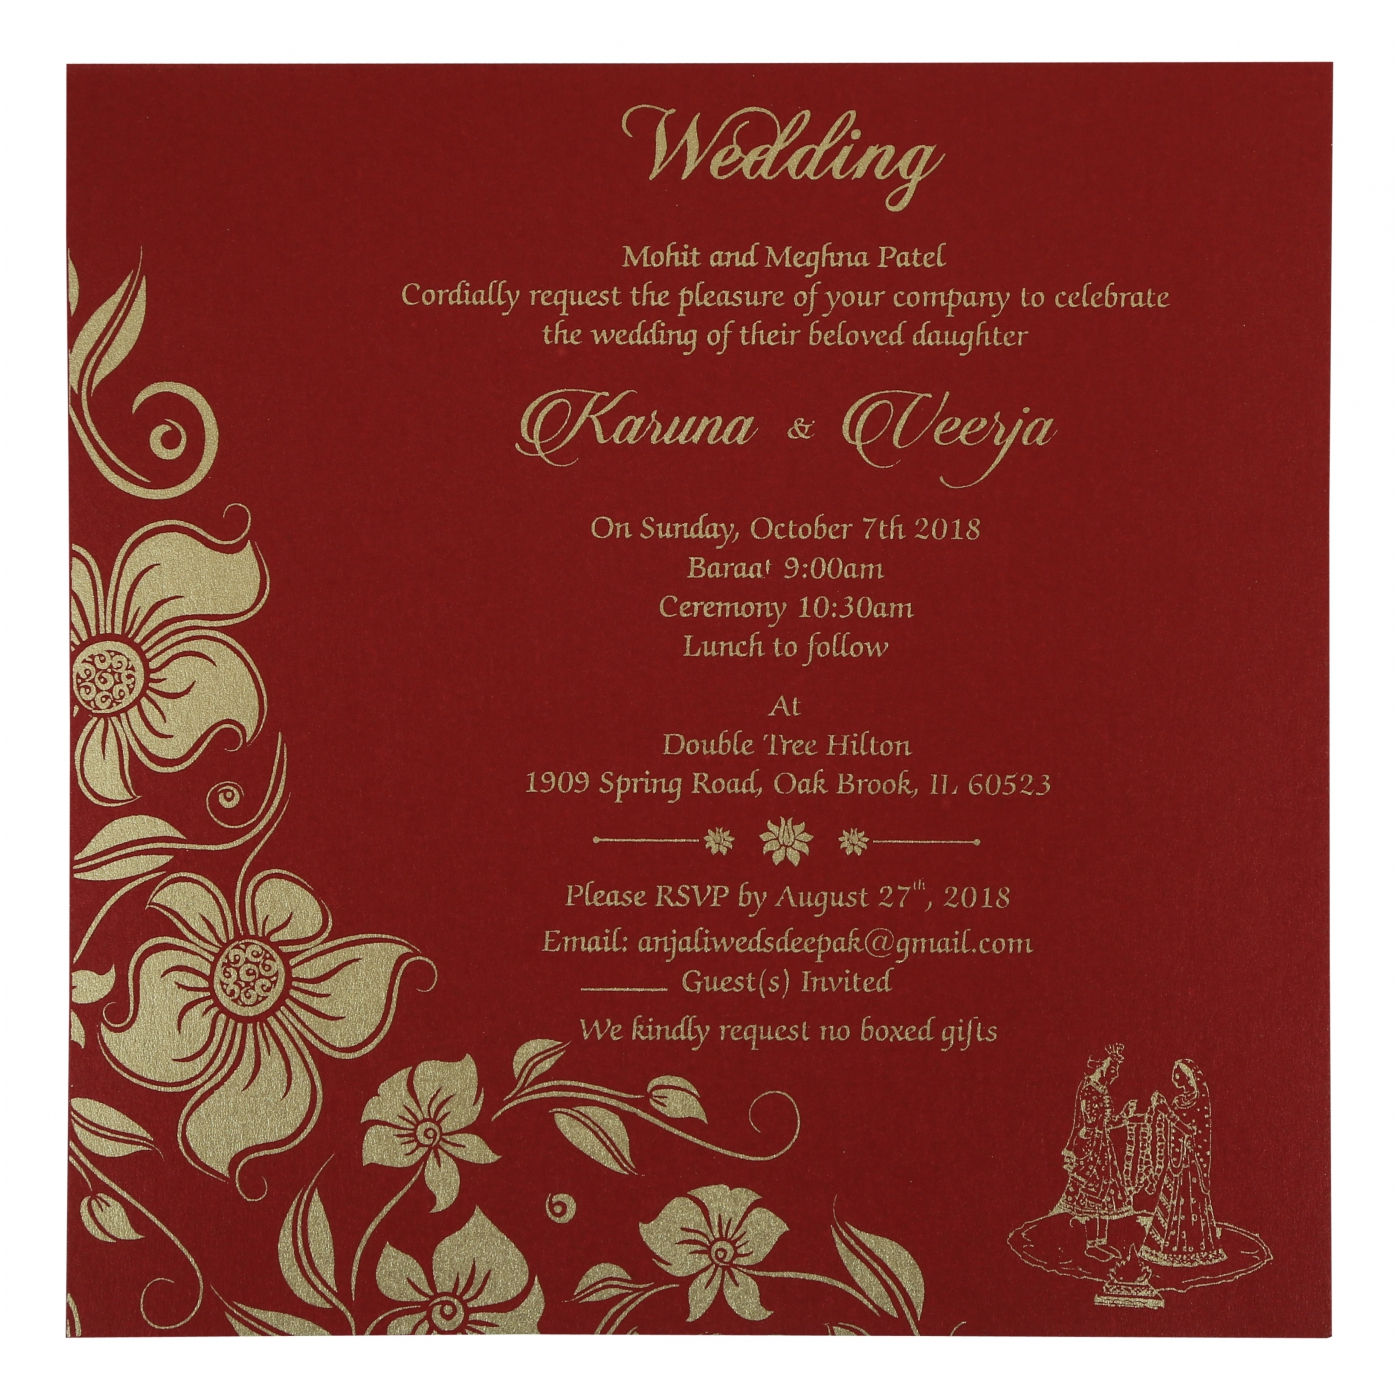 Dorable Falling In Love Wedding Invitations Ensign - Invitations and ...